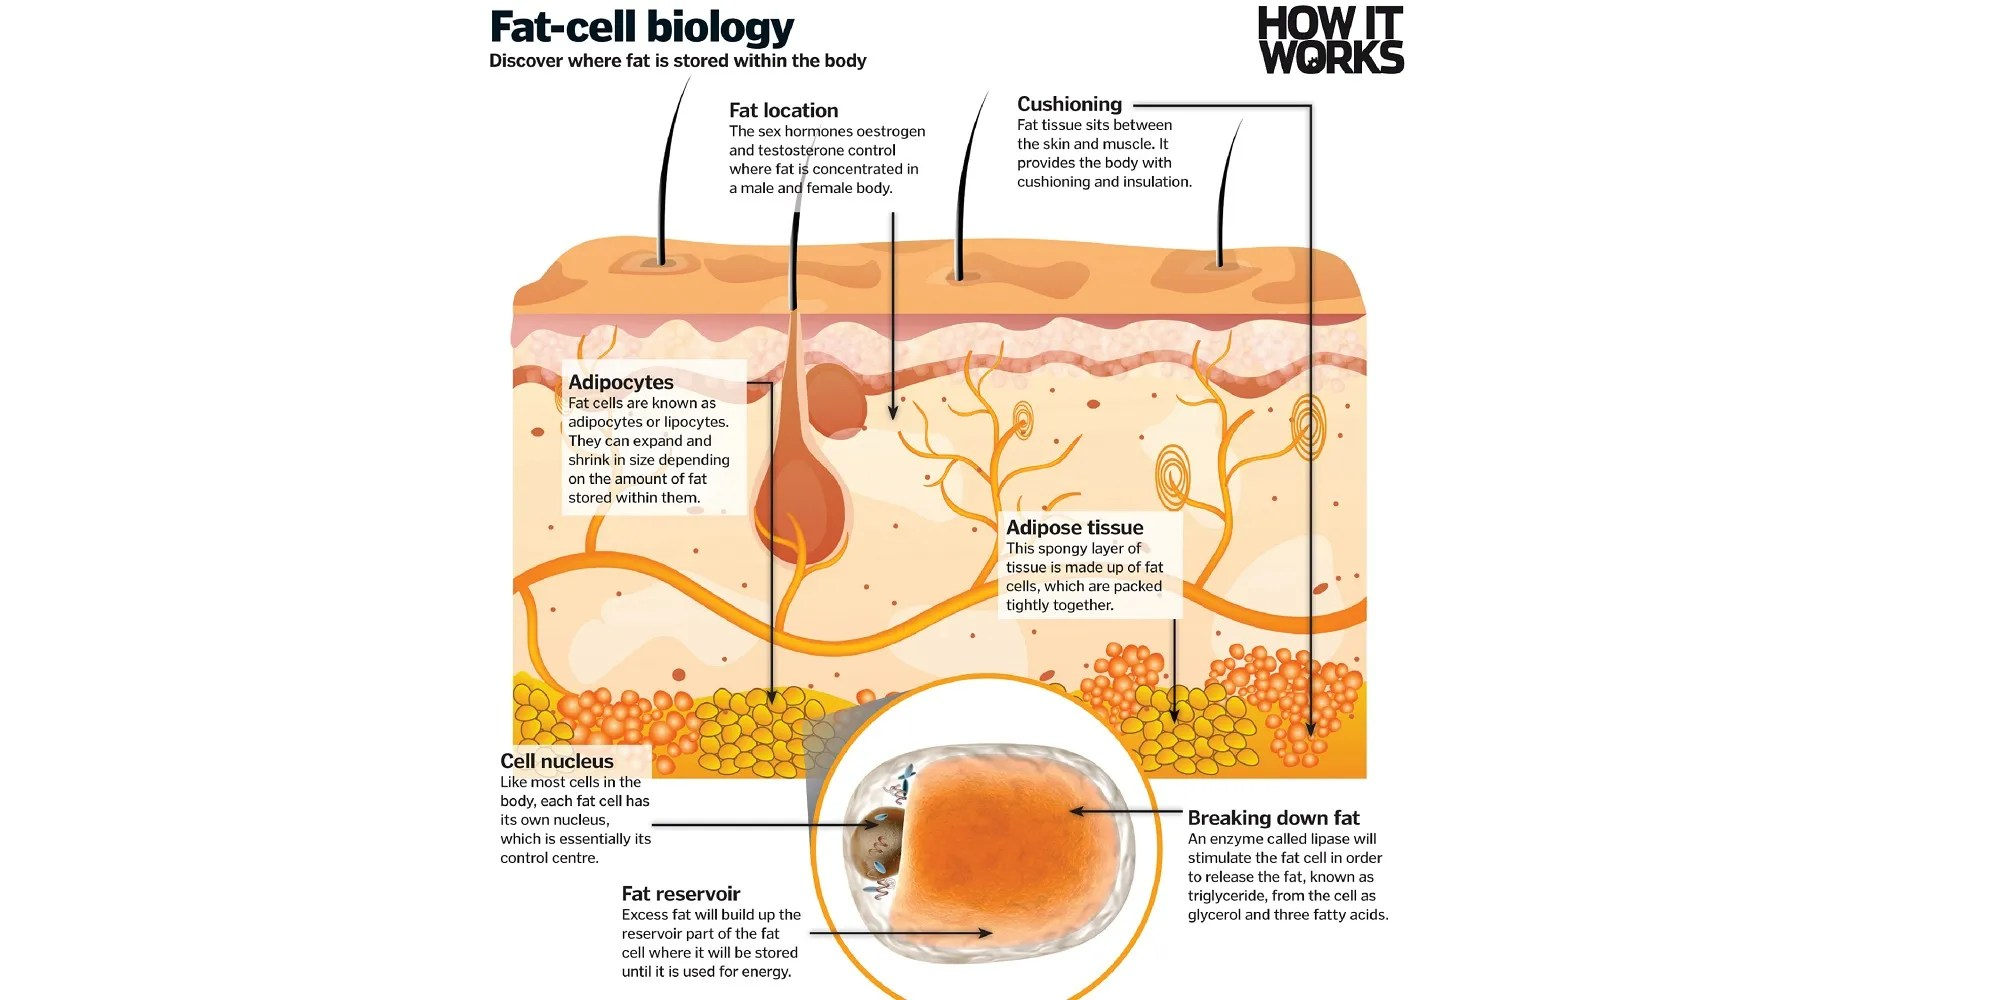 discover reports that the real problem with fat is that the cells store  high amounts of energy and are used up slowly  that is fine if a person is  routinely